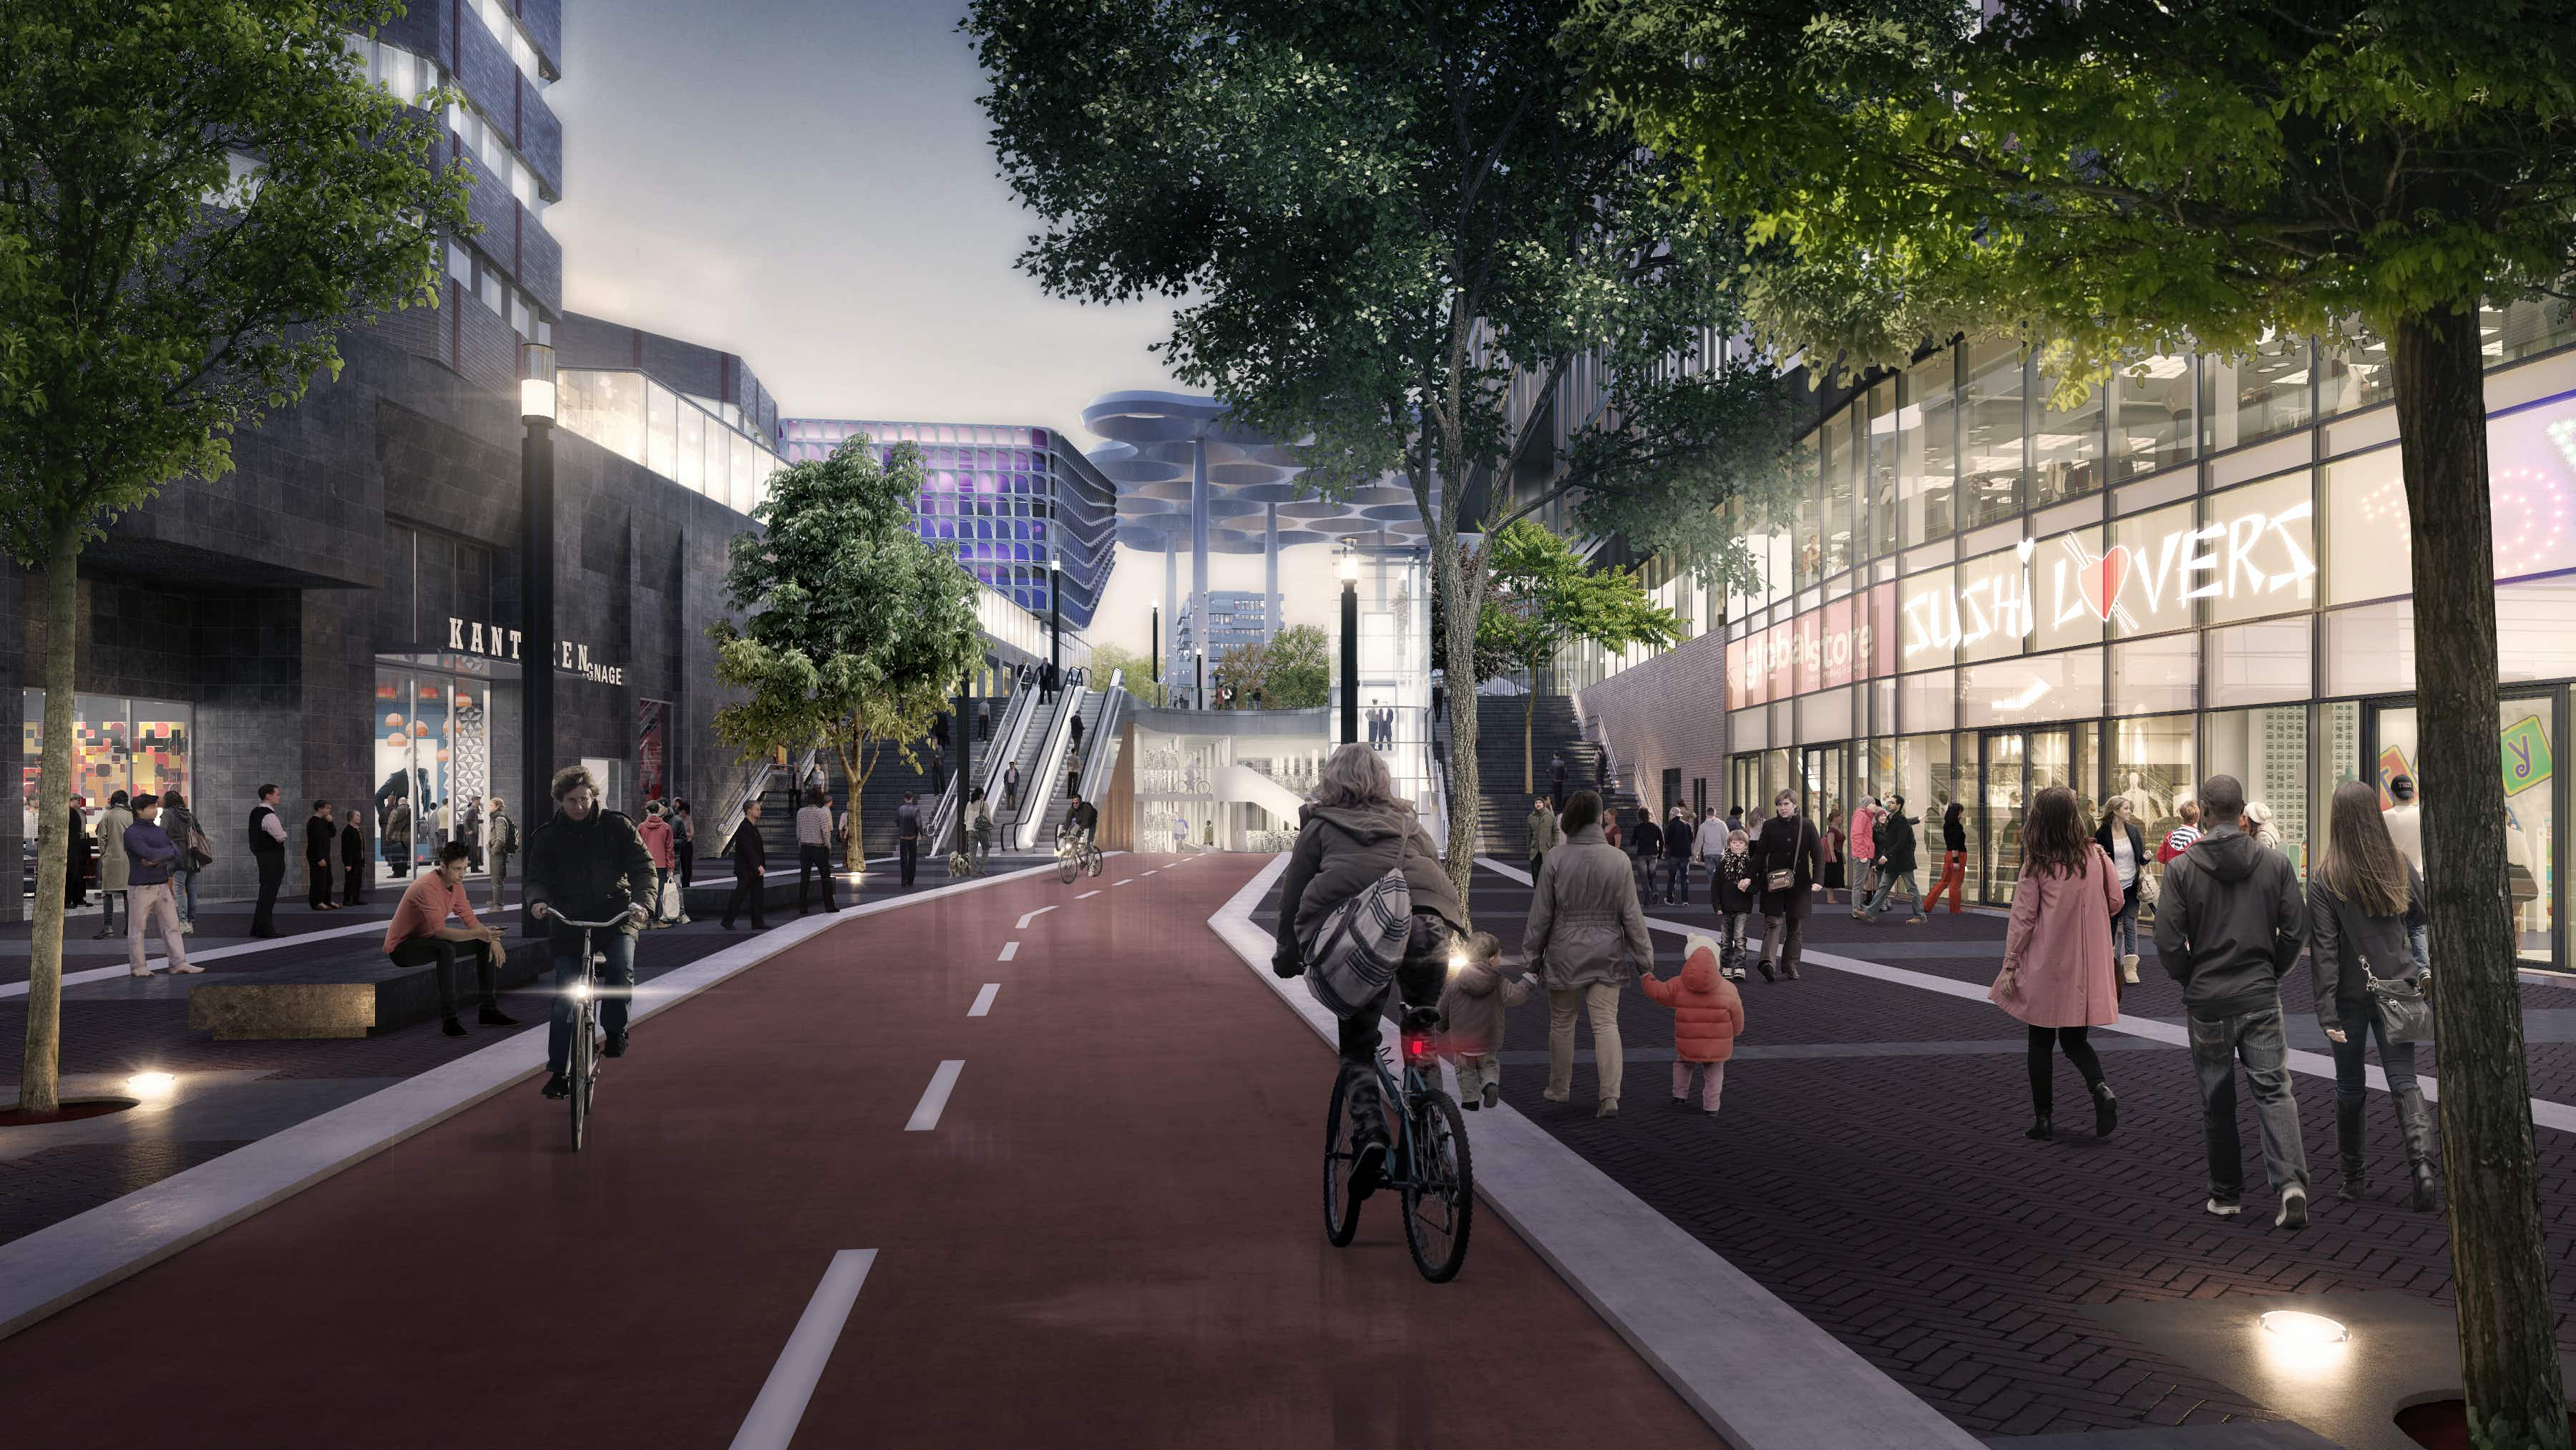 The biggest bike-parking facility in the world is about to open in Utrecht